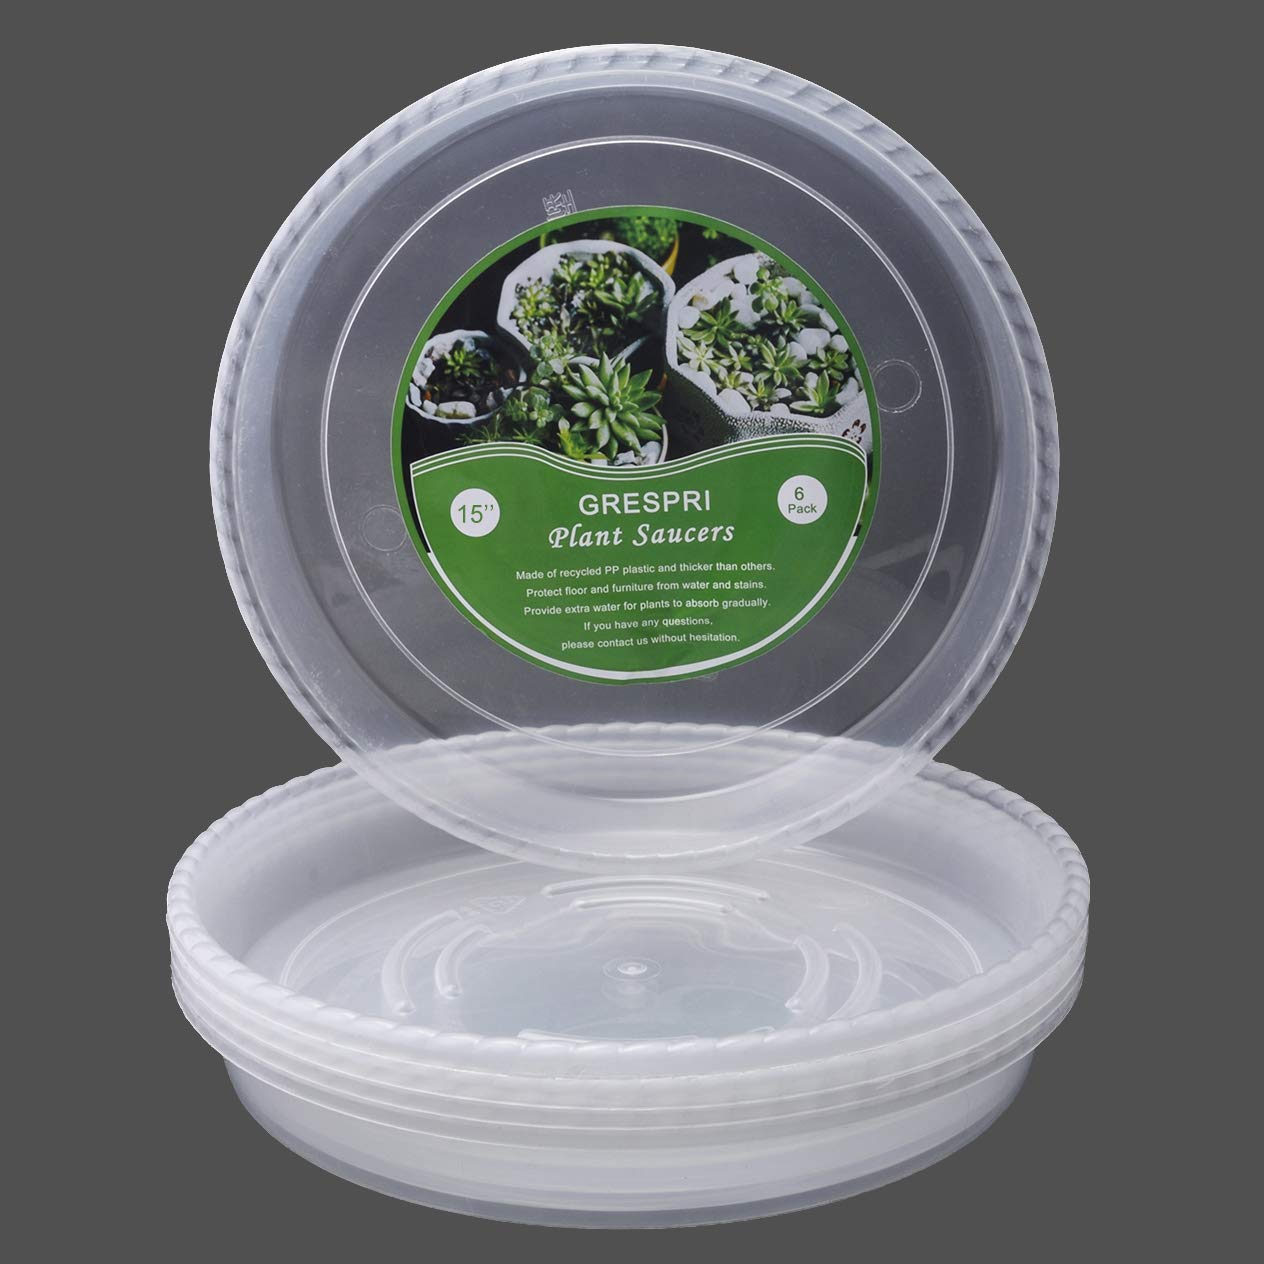 GRENSPRI Plant Saucers in Thick Plastic 6 Packs of Flower Pot Saucers in 15 Inches Clear Round Plant Tray Waterproof for Drips Recycle Indoor or Balcony (15 inches,6packs) by GRENSPRI